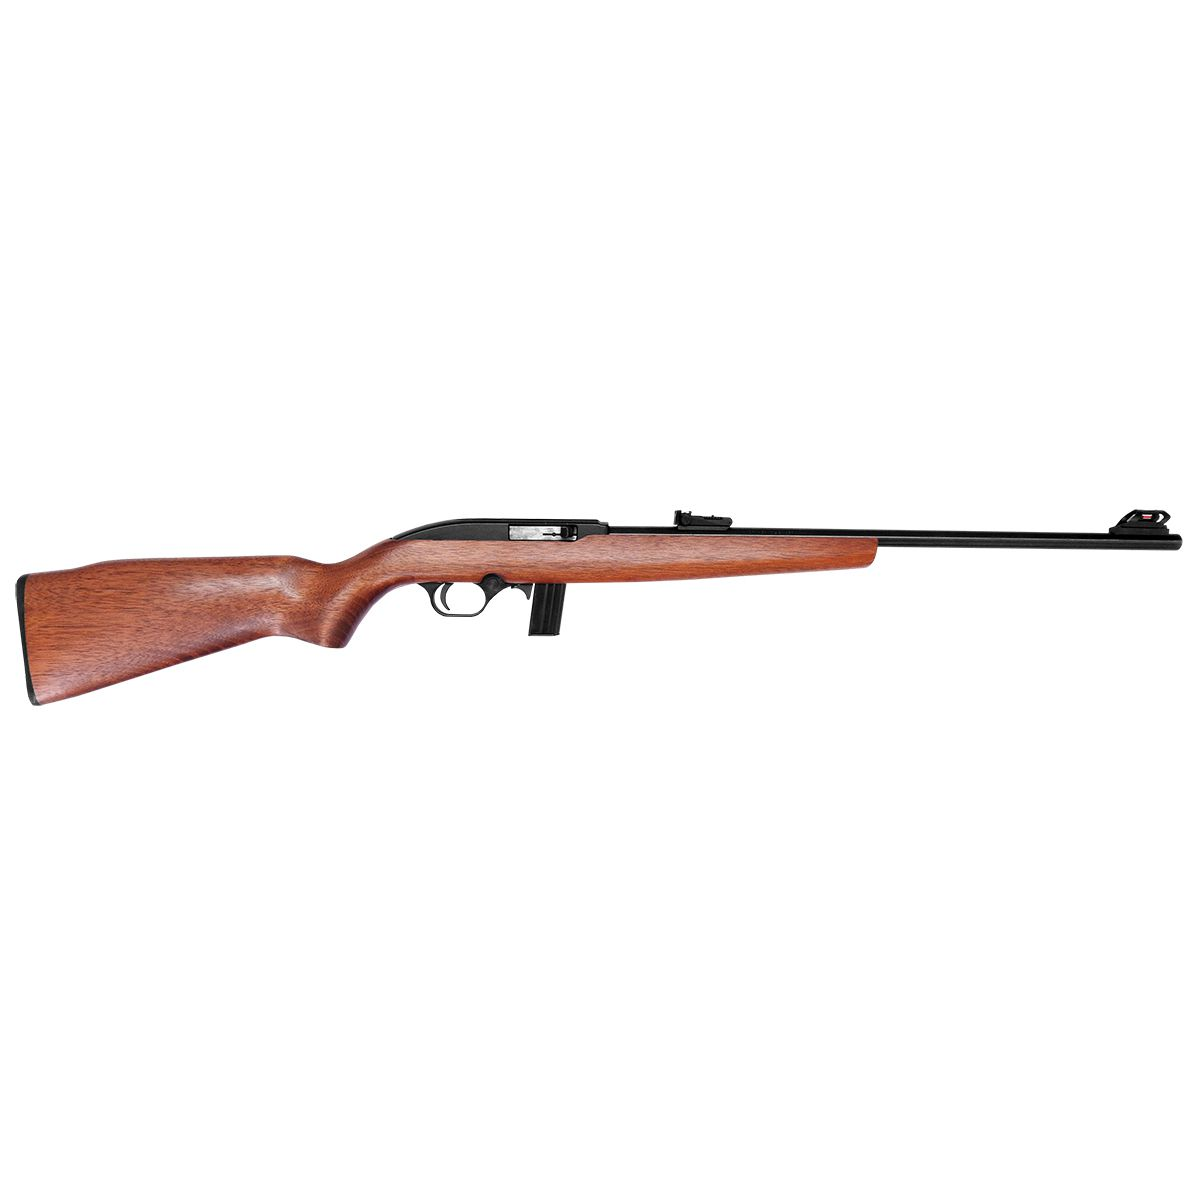 "RIFLE CBC.22 SA 7022 21"" OX MAD"